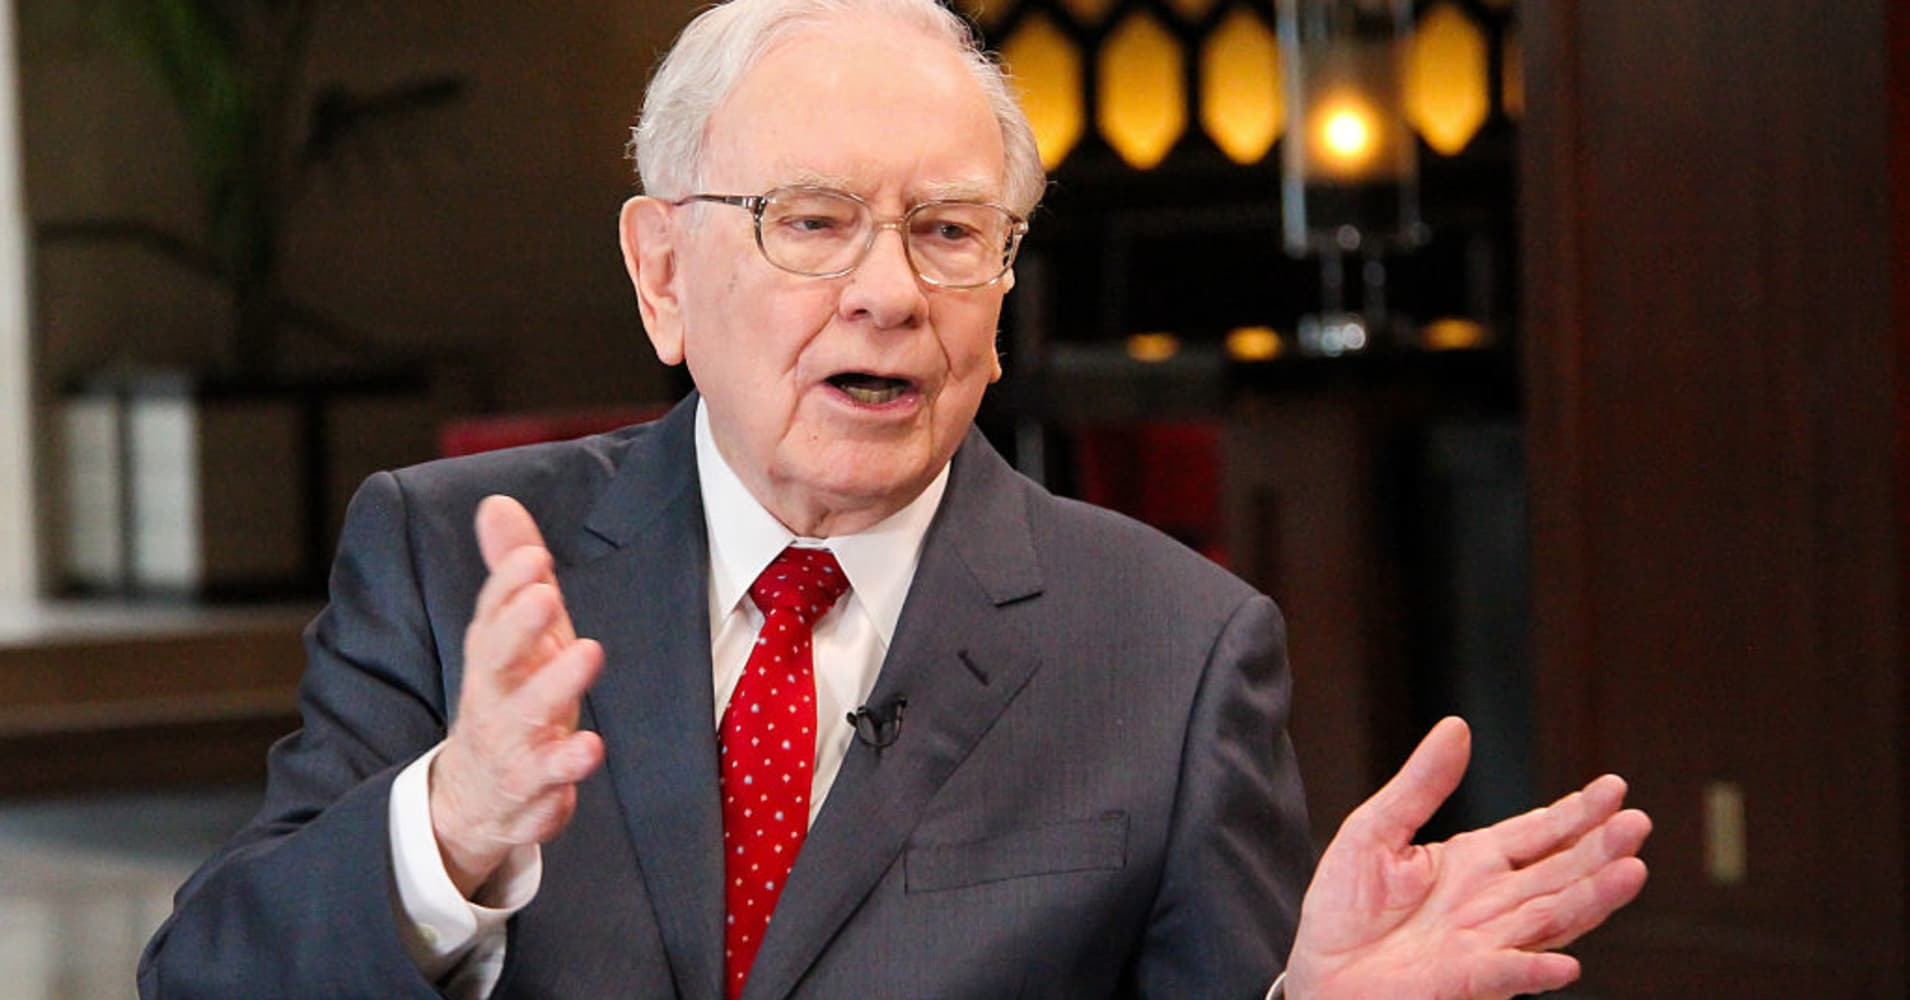 Warren Buffett, chairman and CEO of Berkshire Hathaway, and consistently ranked among the world's wealthiest people, in an interview with Squawk Box on February 29, 2016.